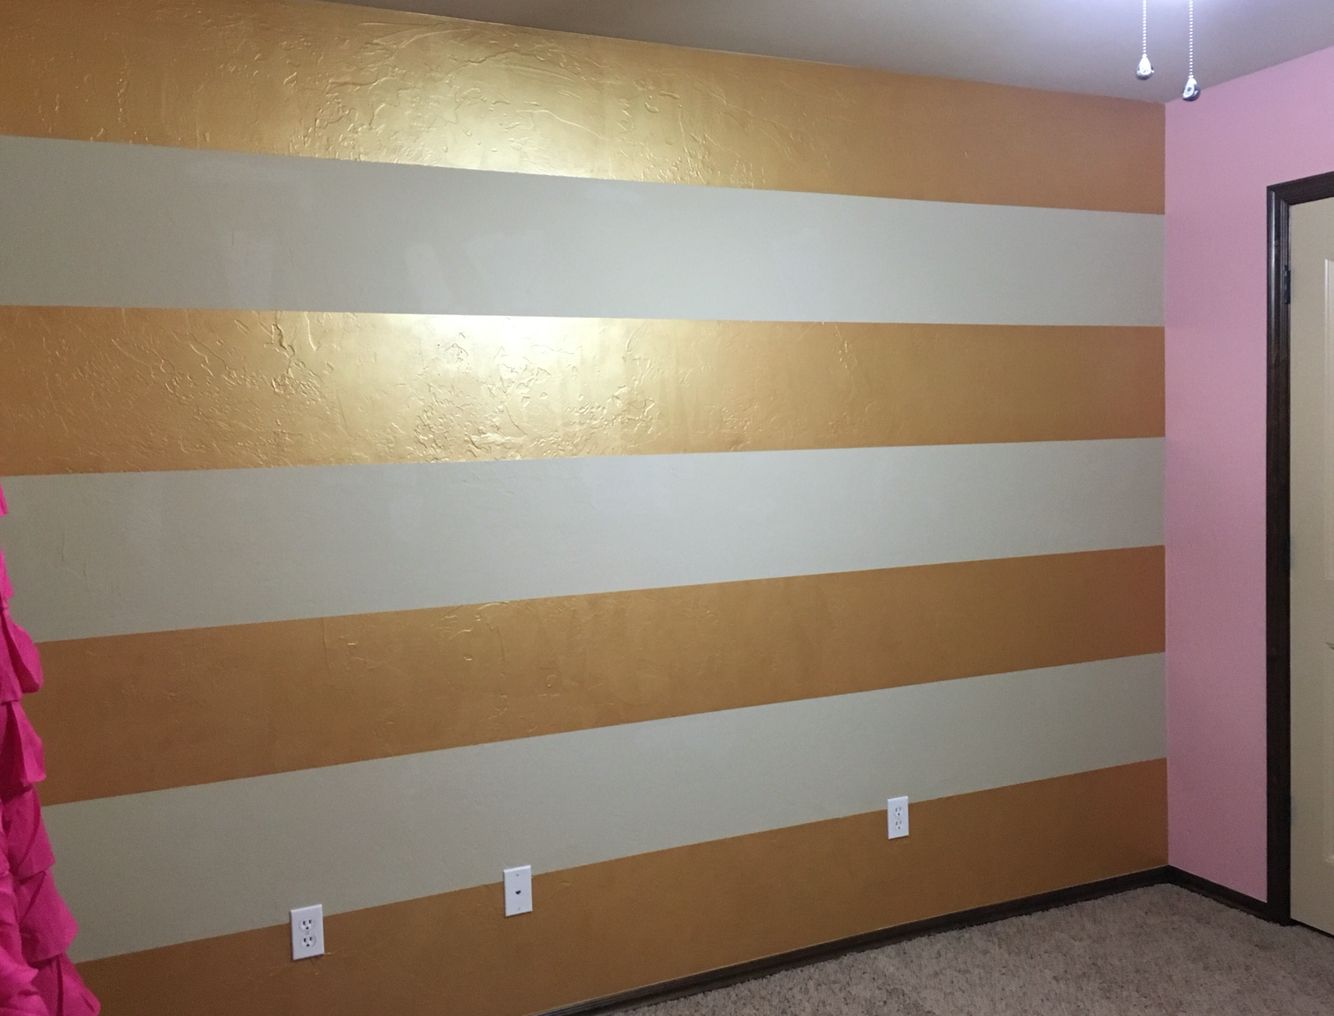 Superbe Sherwin Williams Metallic Impressions Gold Glaze Metallic Paint Colors, Metallic  Gold Wall Paint, Interior